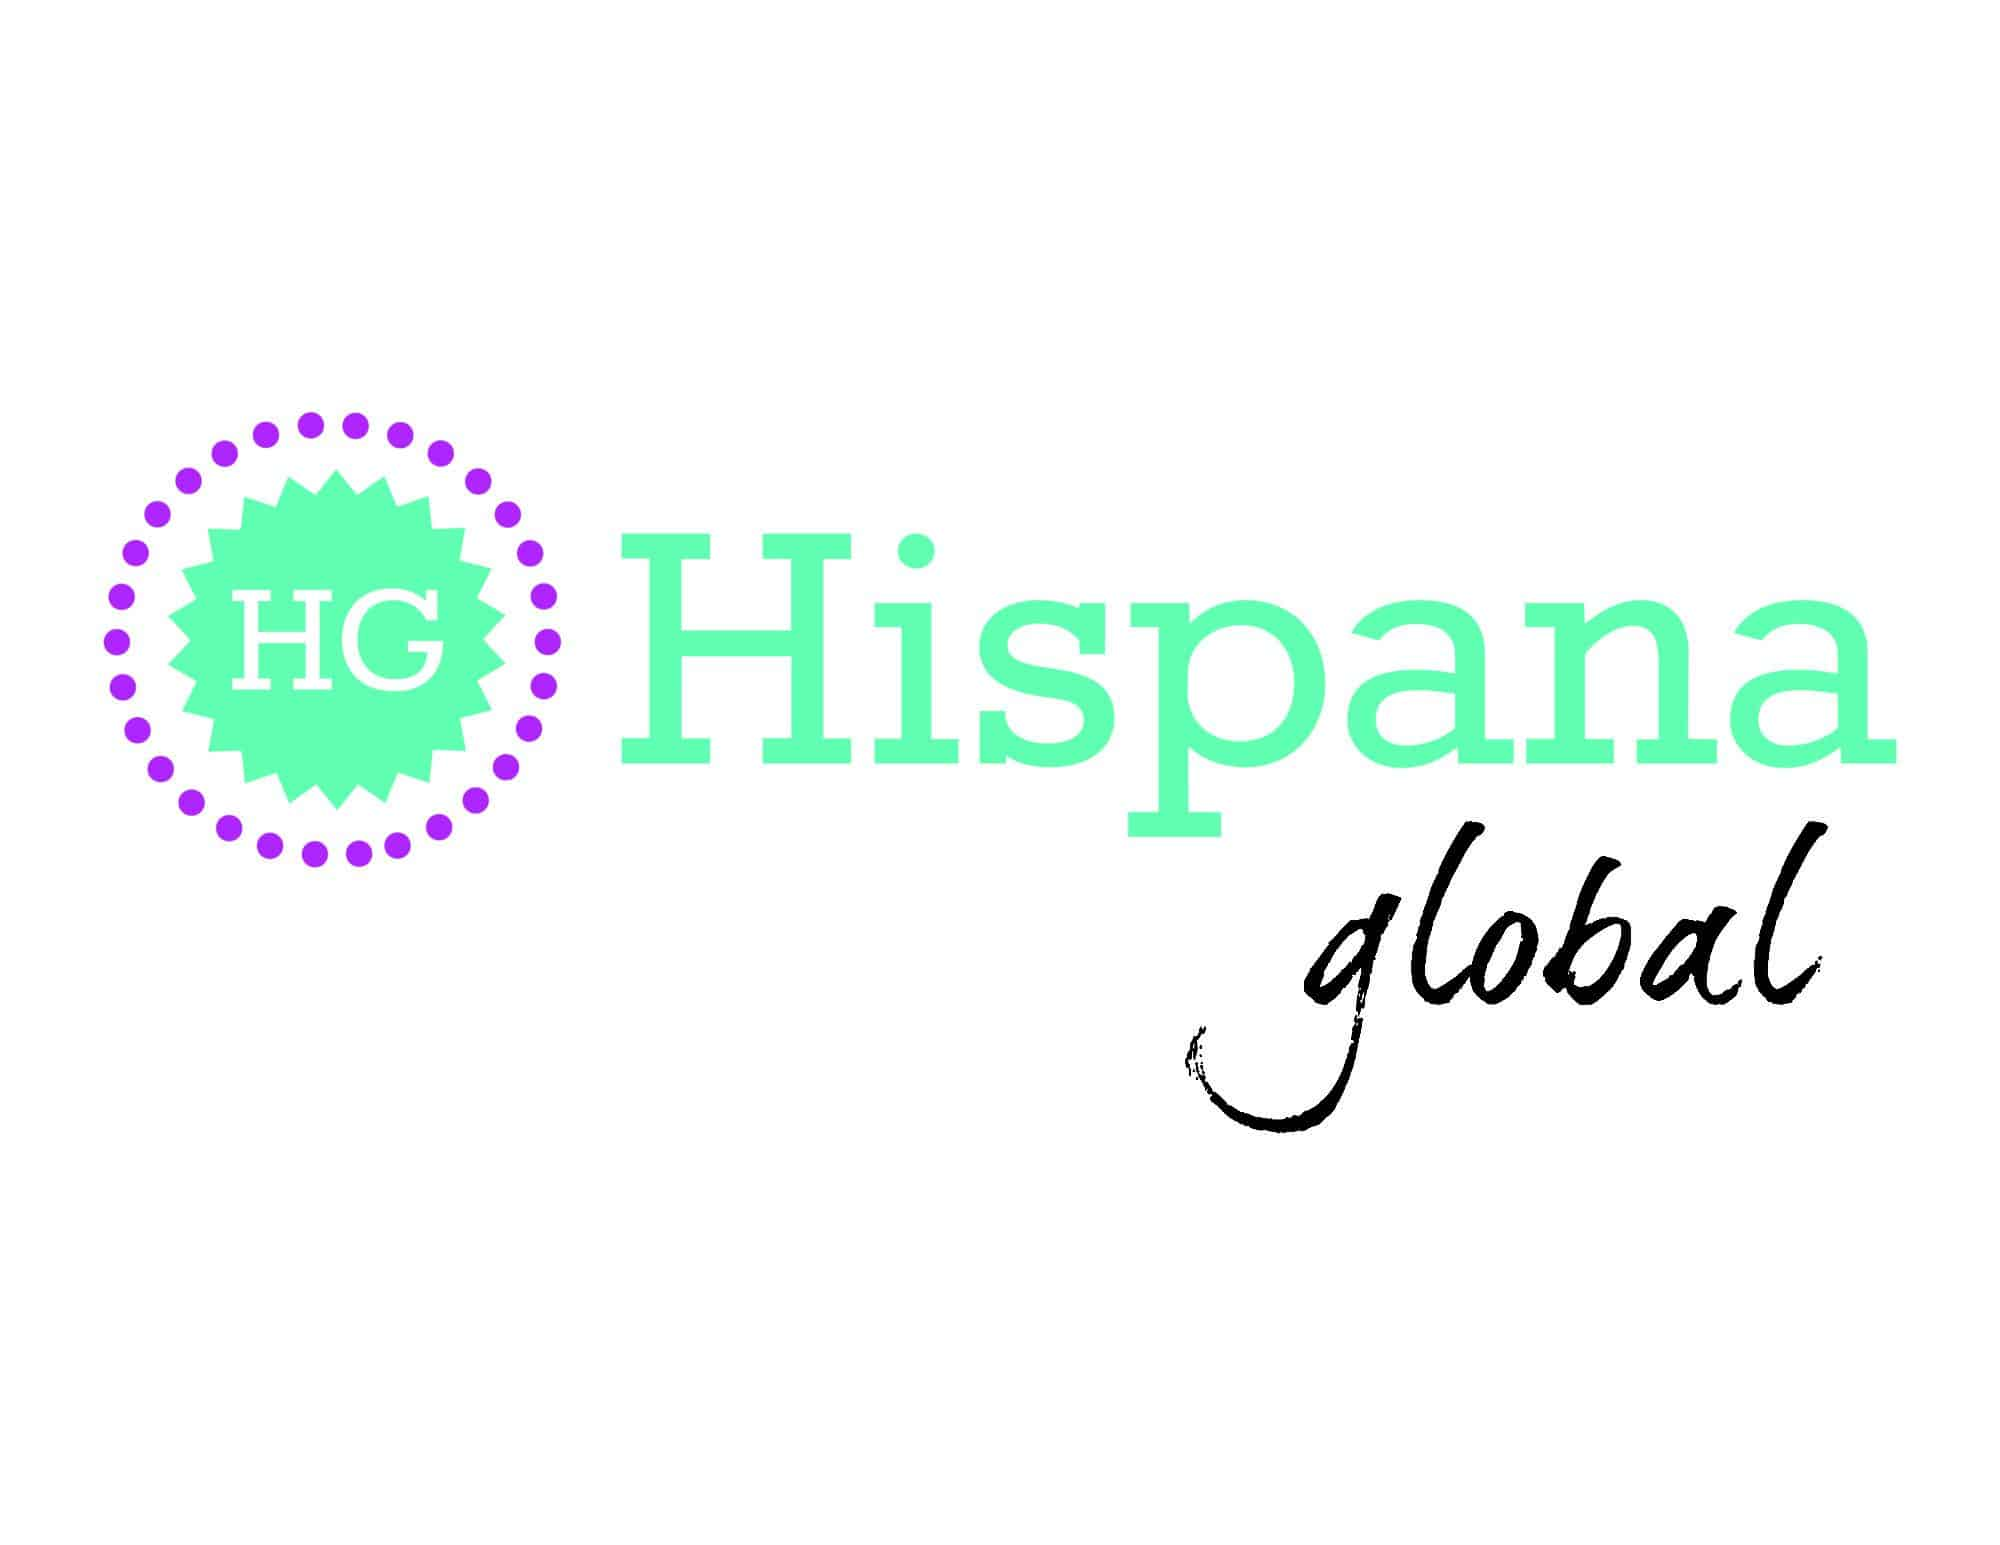 Hispana Global